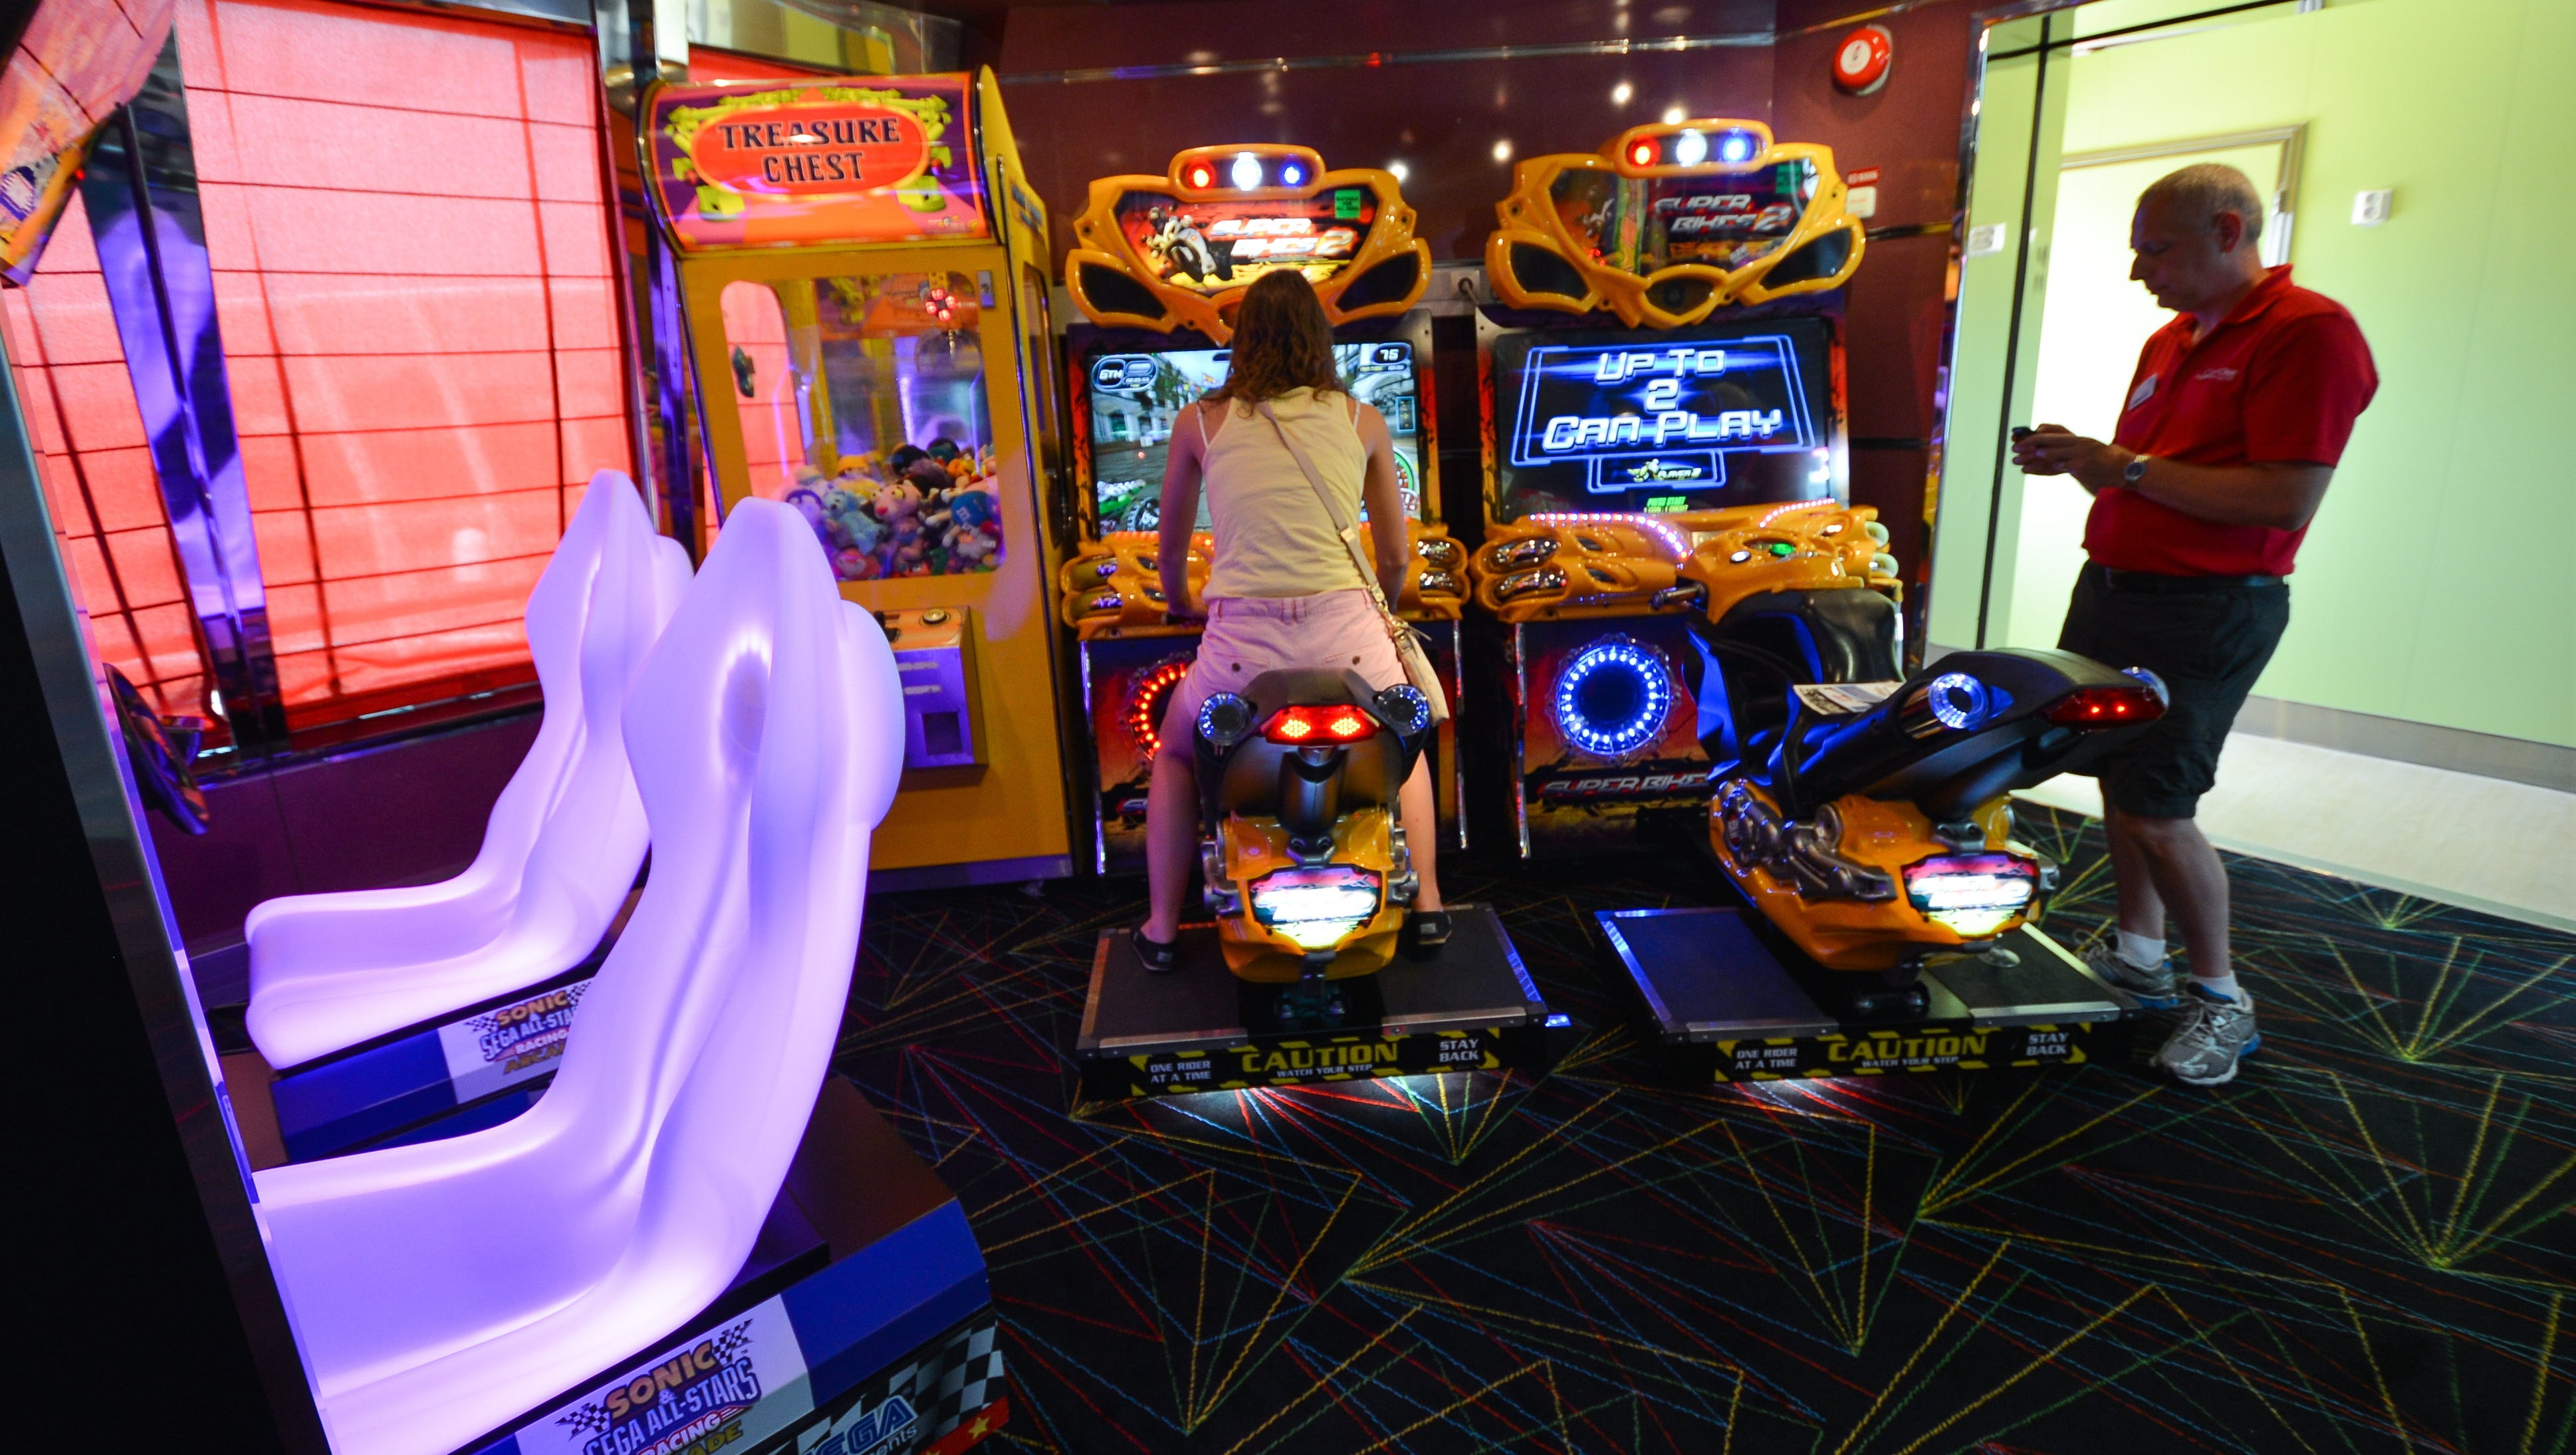 Also on Deck 10 near Adventure Ocean is an arcade with games available at an extra charge.